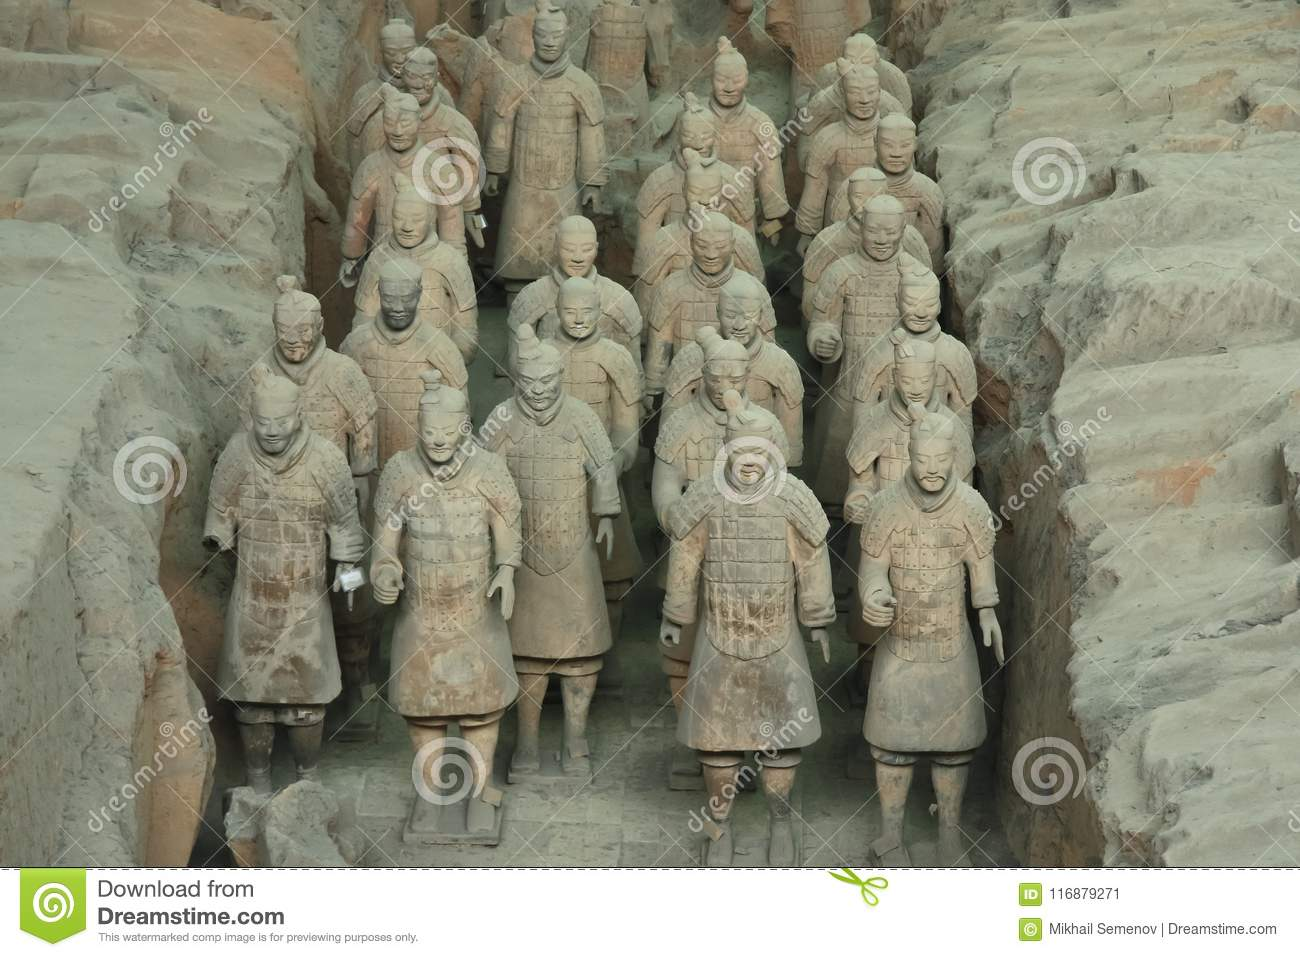 Archaeological excavations of the clay army of the emperor Qin Shi Huang